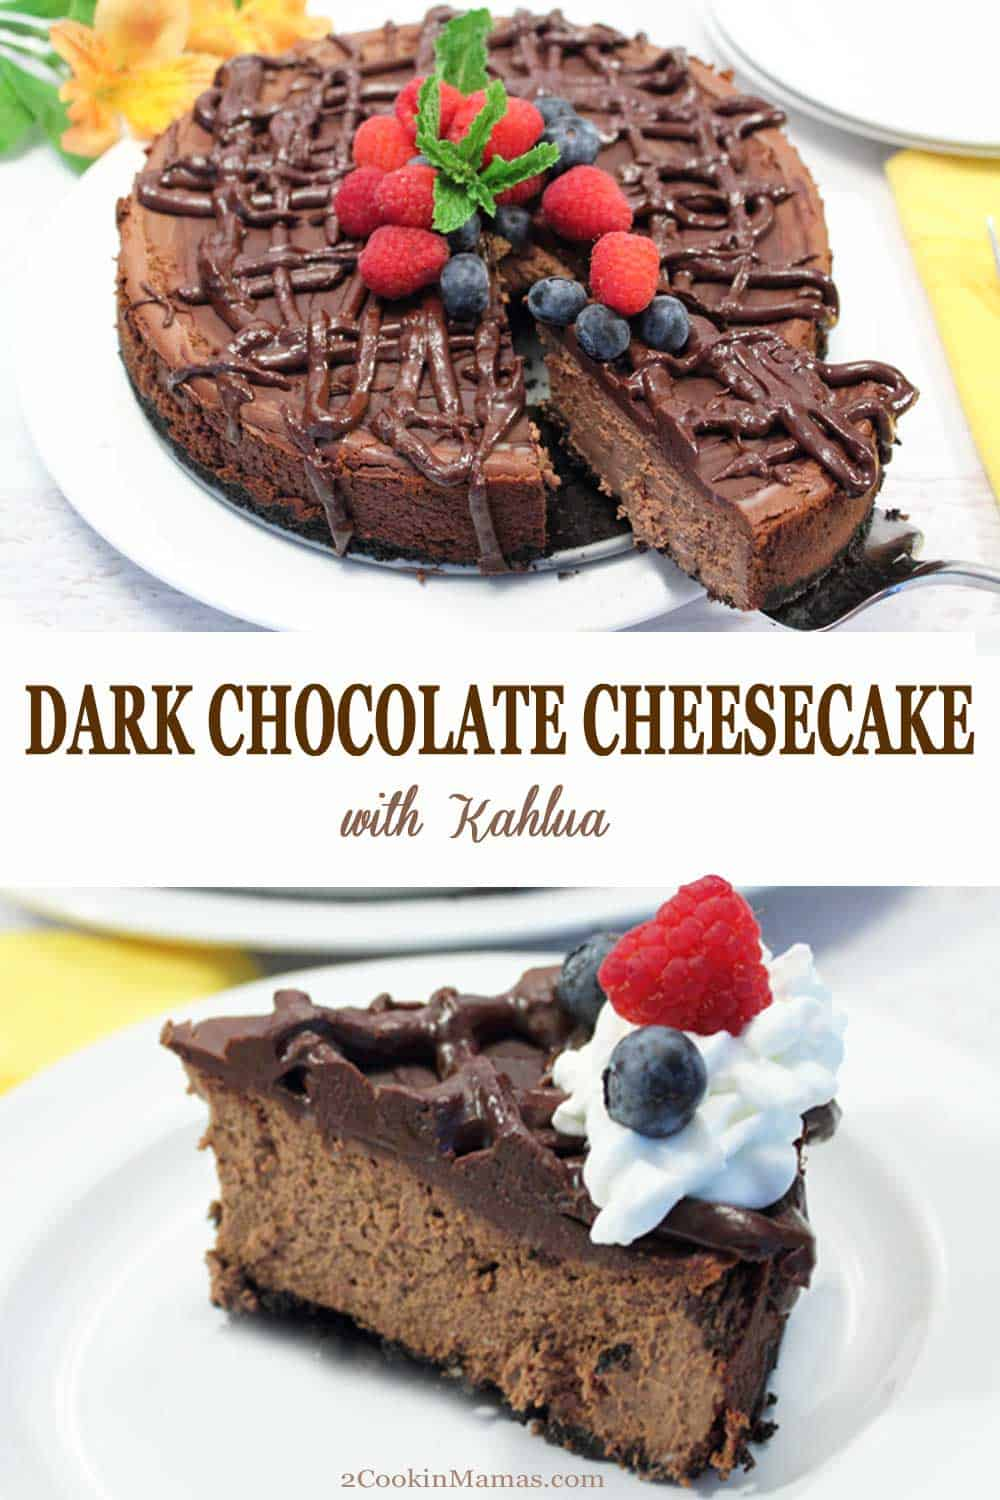 Dark Chocolate Kahlua Cheesecake | 2 Cookin Mamas Dark Chocolate Kahlua Cheesecake is a chocolate lovers dream. Rich, creamy chocolate cheesecake, flavored with a hint of coffee, then drizzled with loads of dark chocolate. #cheesecake #chocolate #coffee #darkchocolate #kahlua #dessert #homemade #recipe #ValentinesDay #anniversary